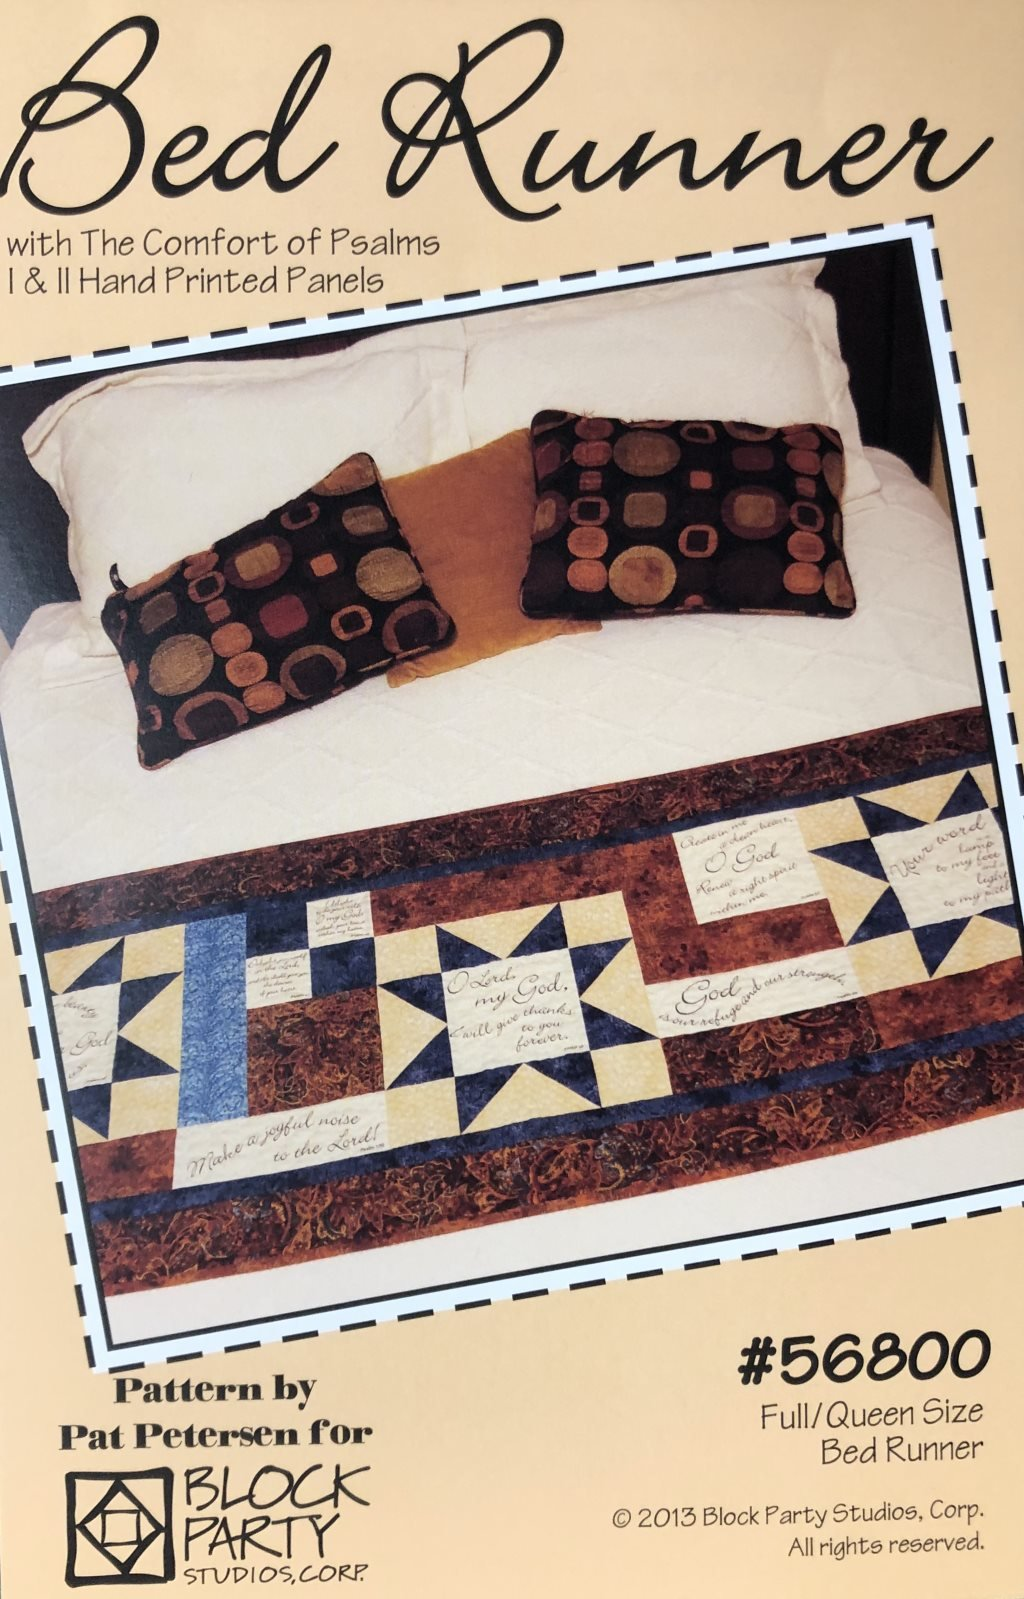 Psalms Bed Runner Quilt Pattern & Fabric Duo Panel Kit